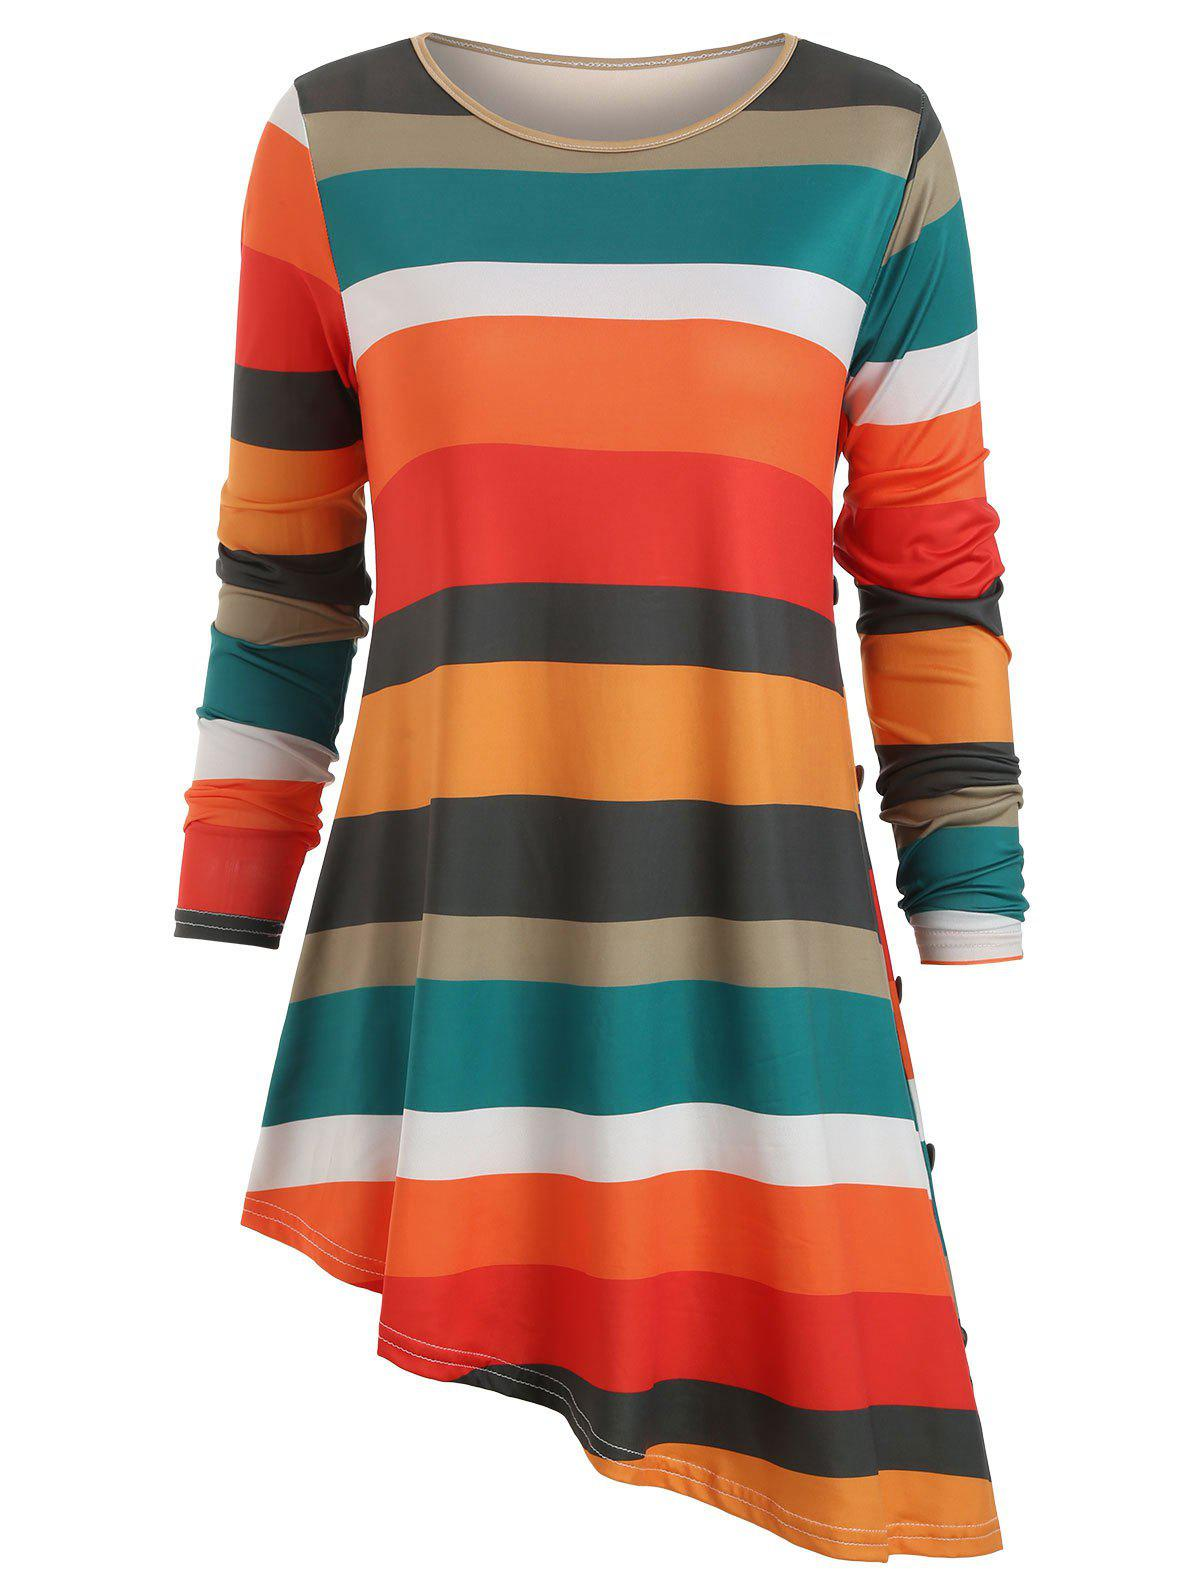 Contrast Striped Asymmetric Long Sleeves Tee - multicolor C L